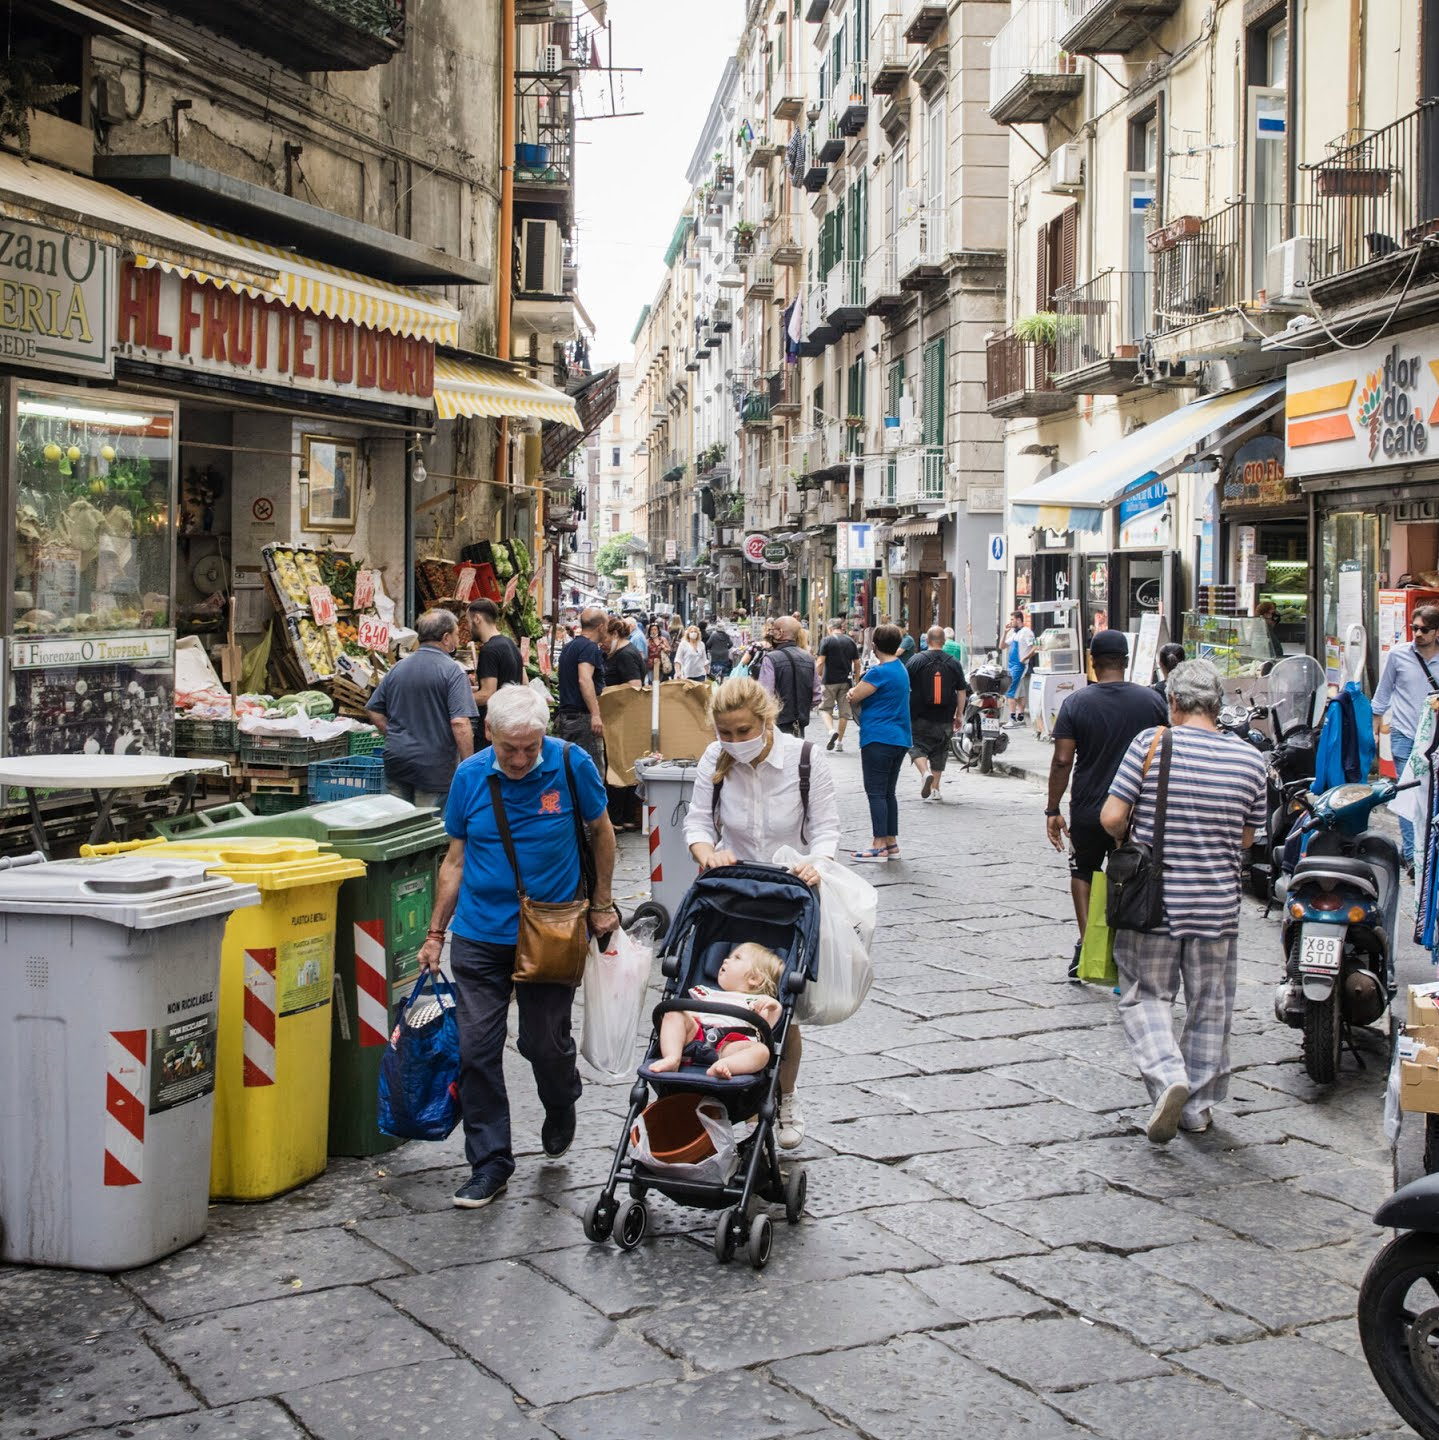 A market in Naples, Italy, on June 19. Italians are cautiously optimistic that they have the virus in check — even as national health experts warn that complacency remains the jet fuel of the pandemic.